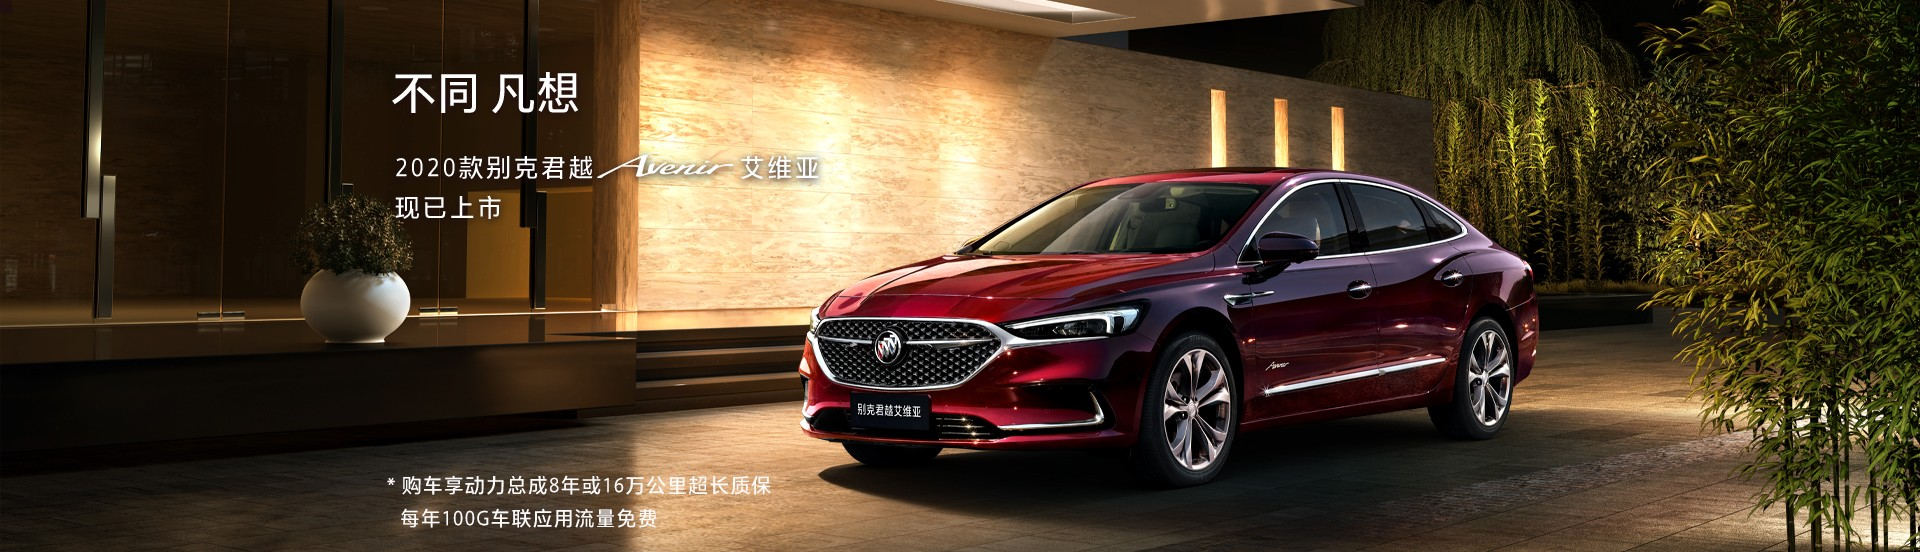 2021 buick lacrosse facelift looks pretty luxurious with